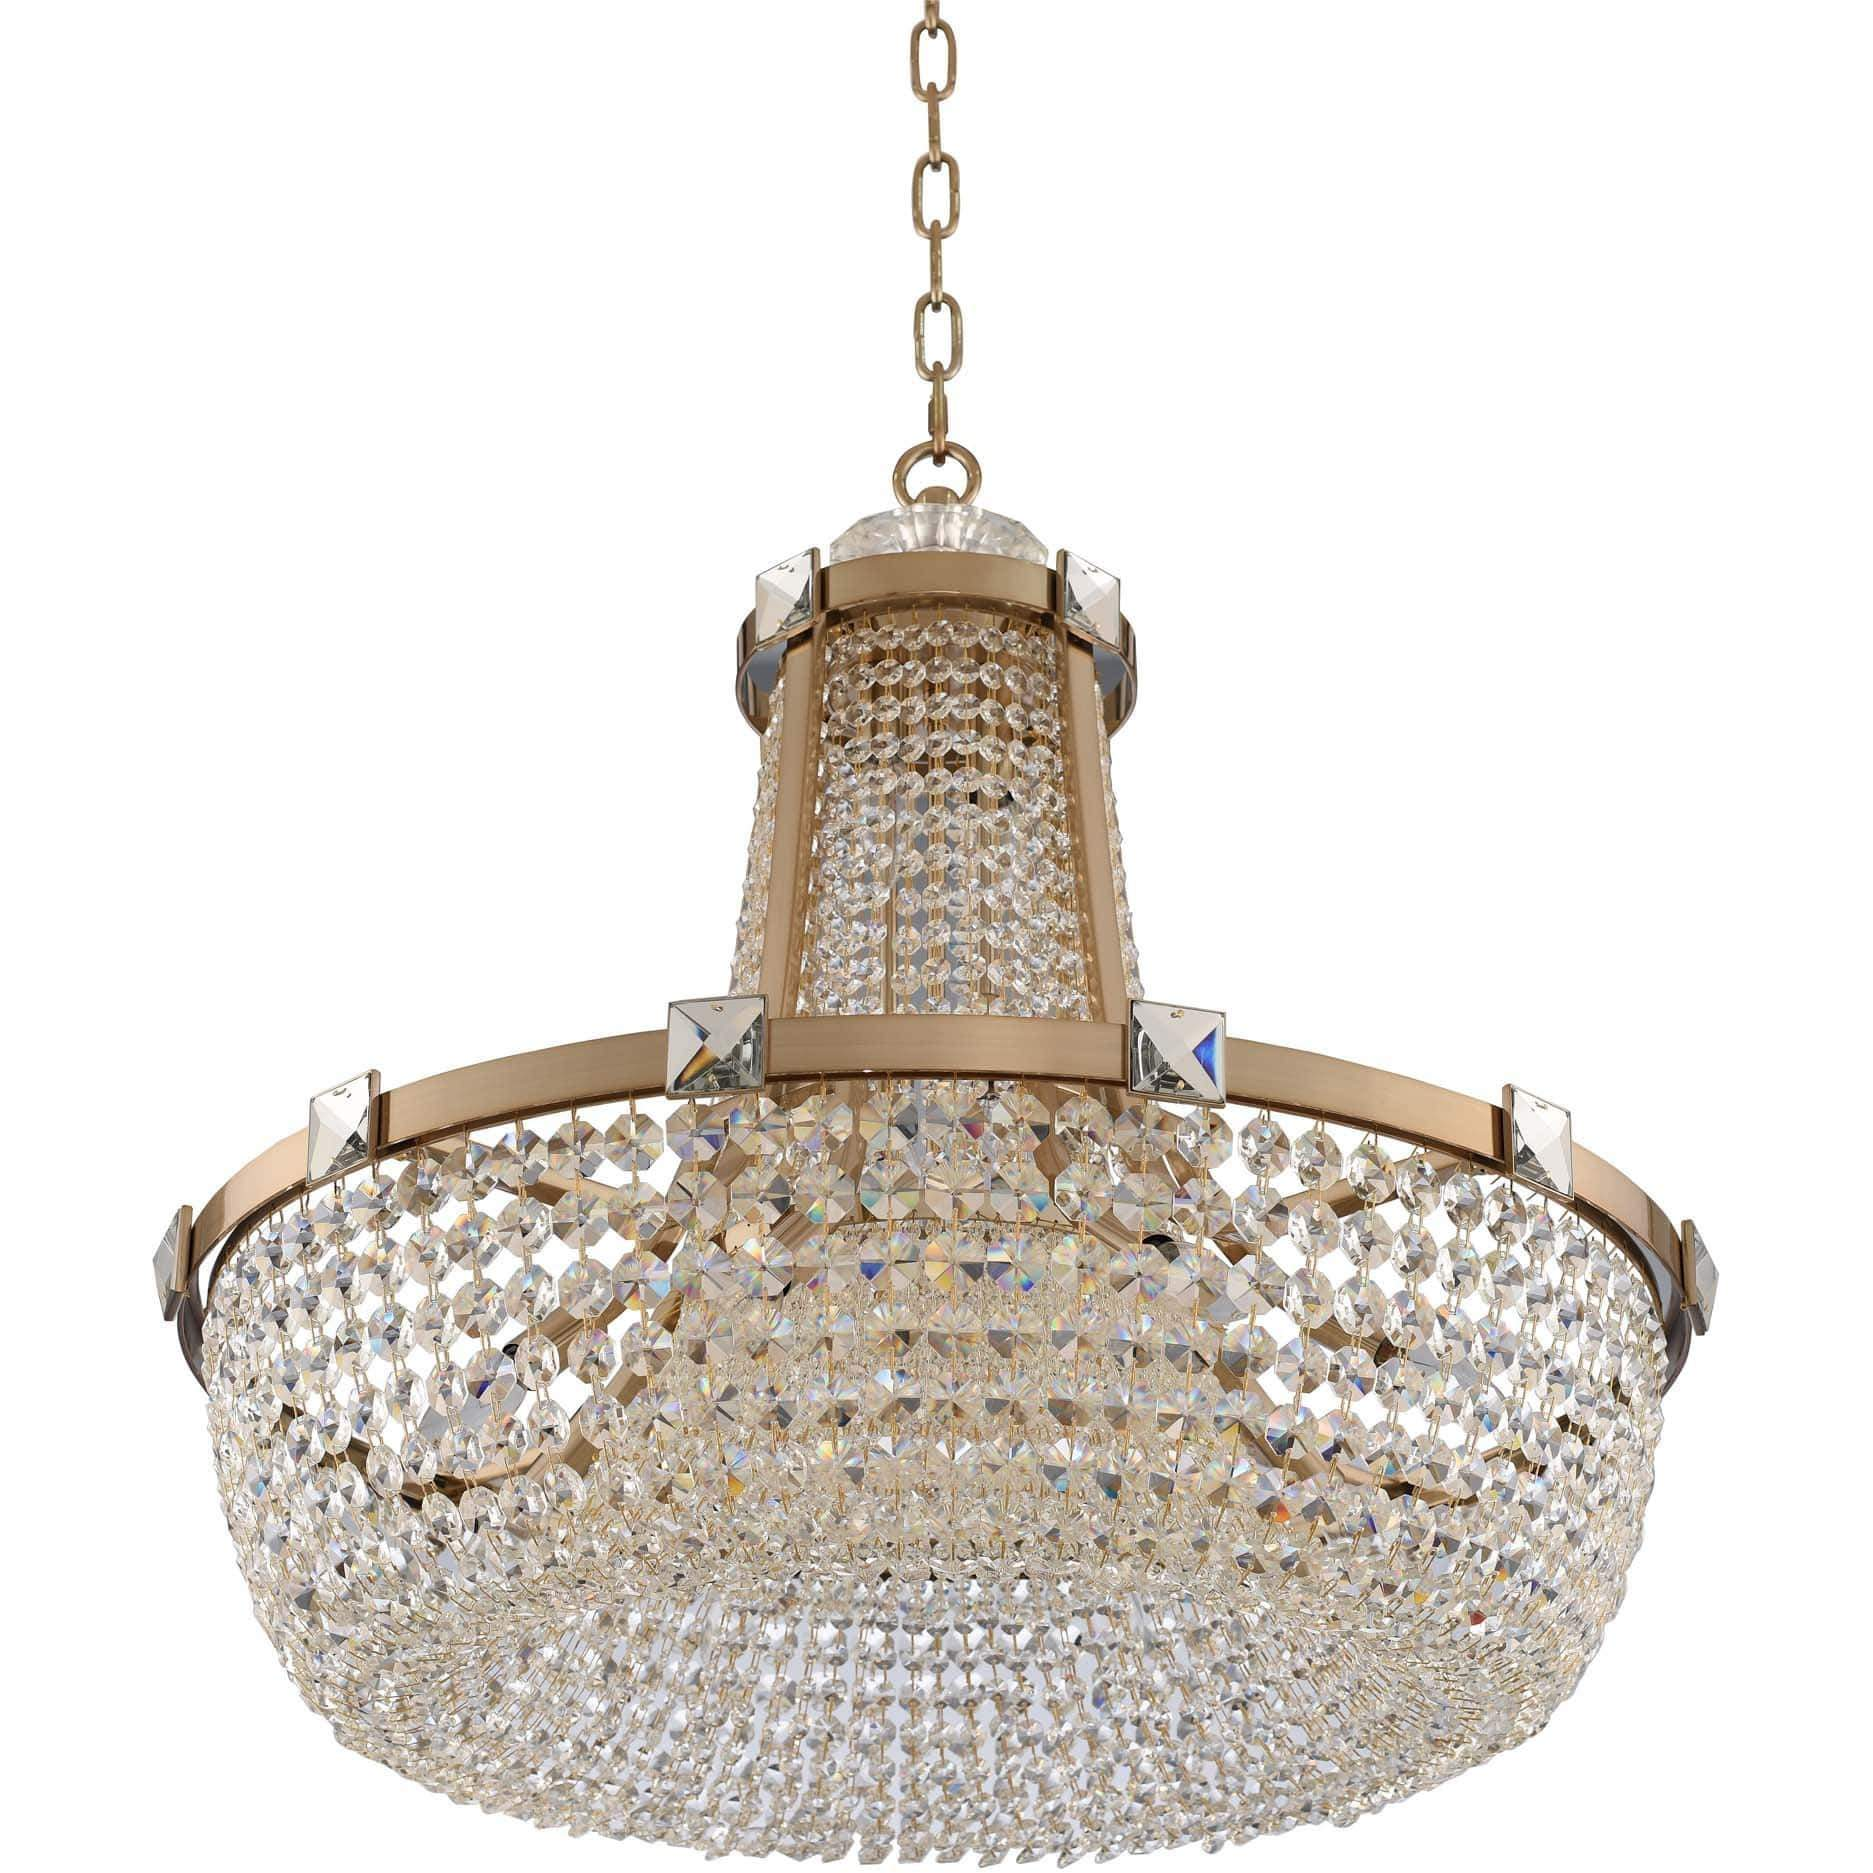 Allegri by Kalco Lighting Pendants Brushed Champagne Gold / Firenze Clear Impero 30 Inch Pendant From Allegri by Kalco Lighting 027950